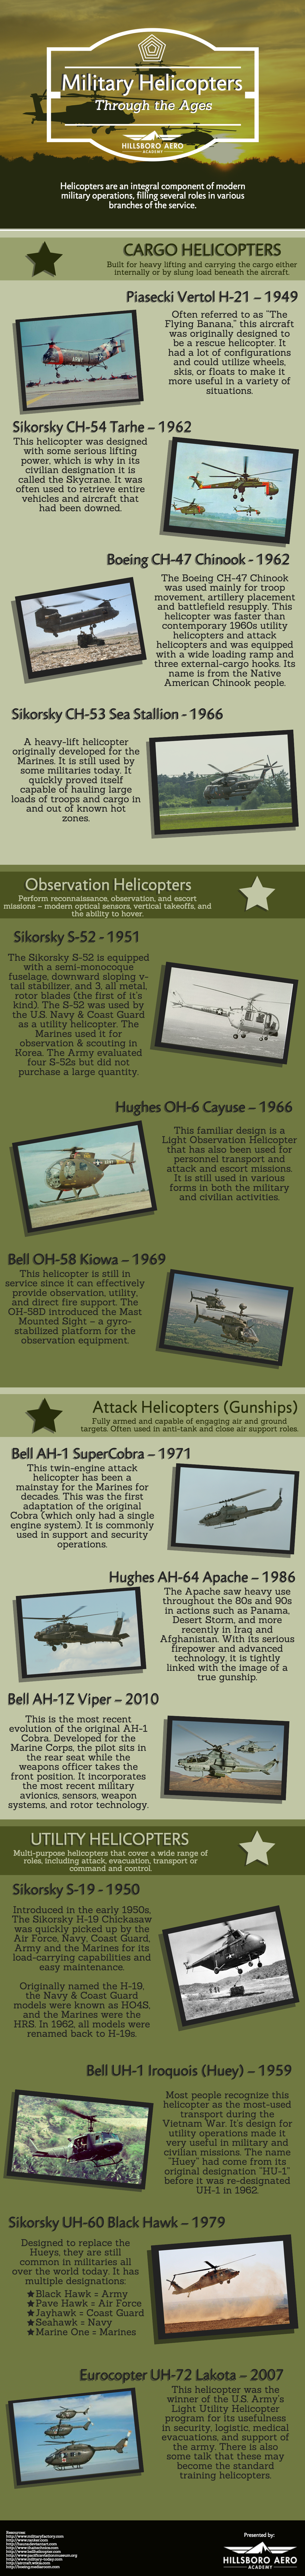 Military Helicopter Infographic 9-9-15